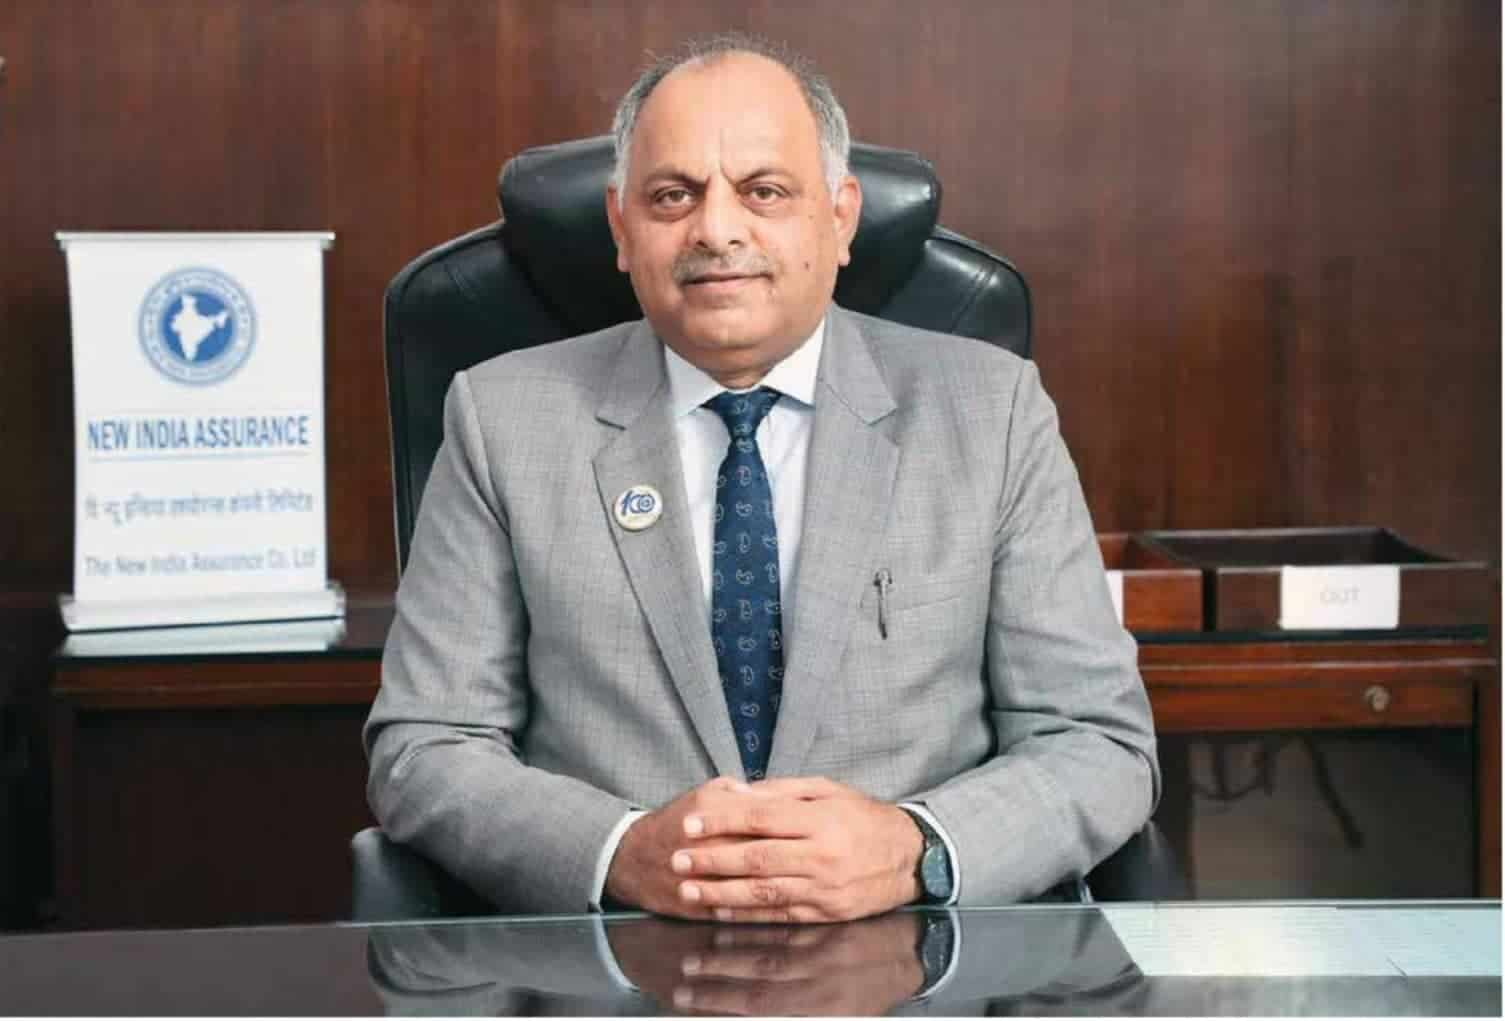 Atul Sahai, CMD, New India Assurance